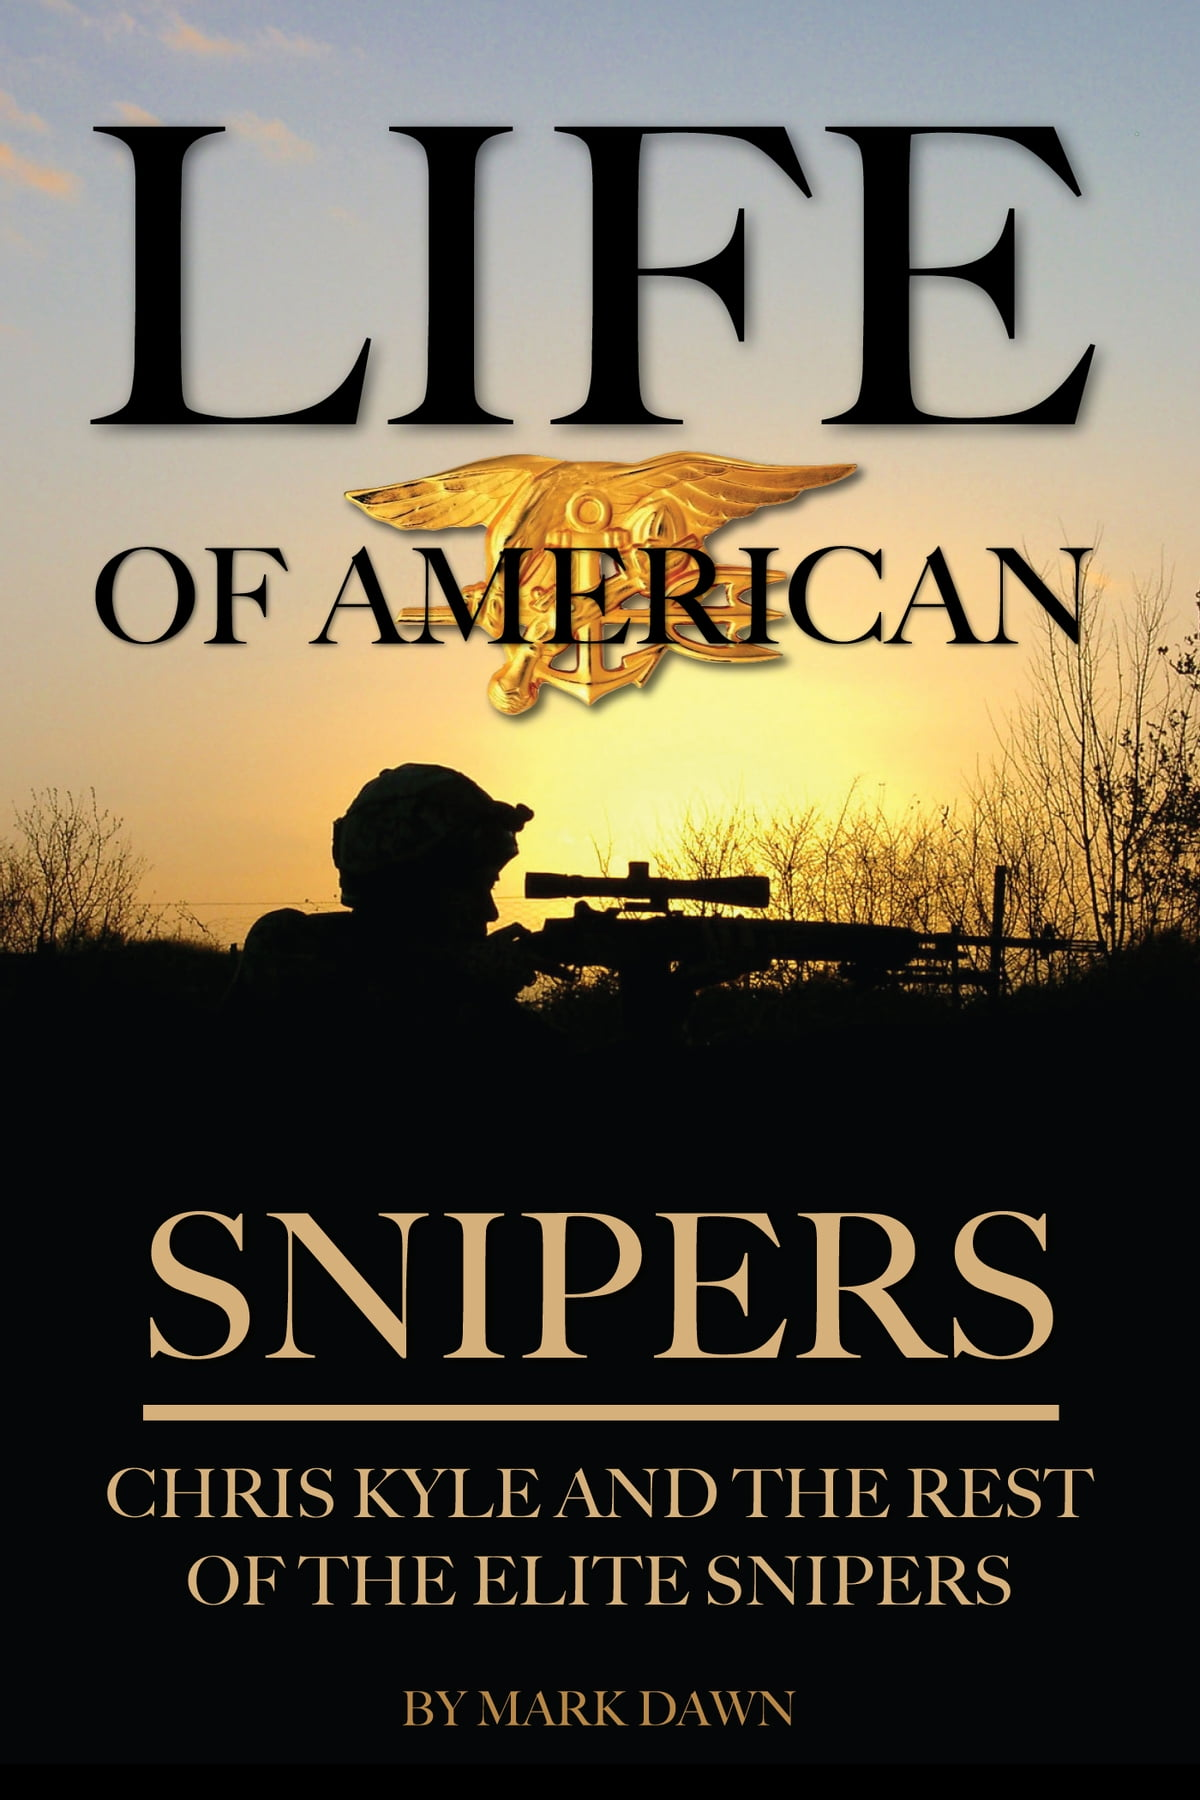 American Sniper Libro En Español Life Of American Snipers Chris Kyle And The Rest Of The